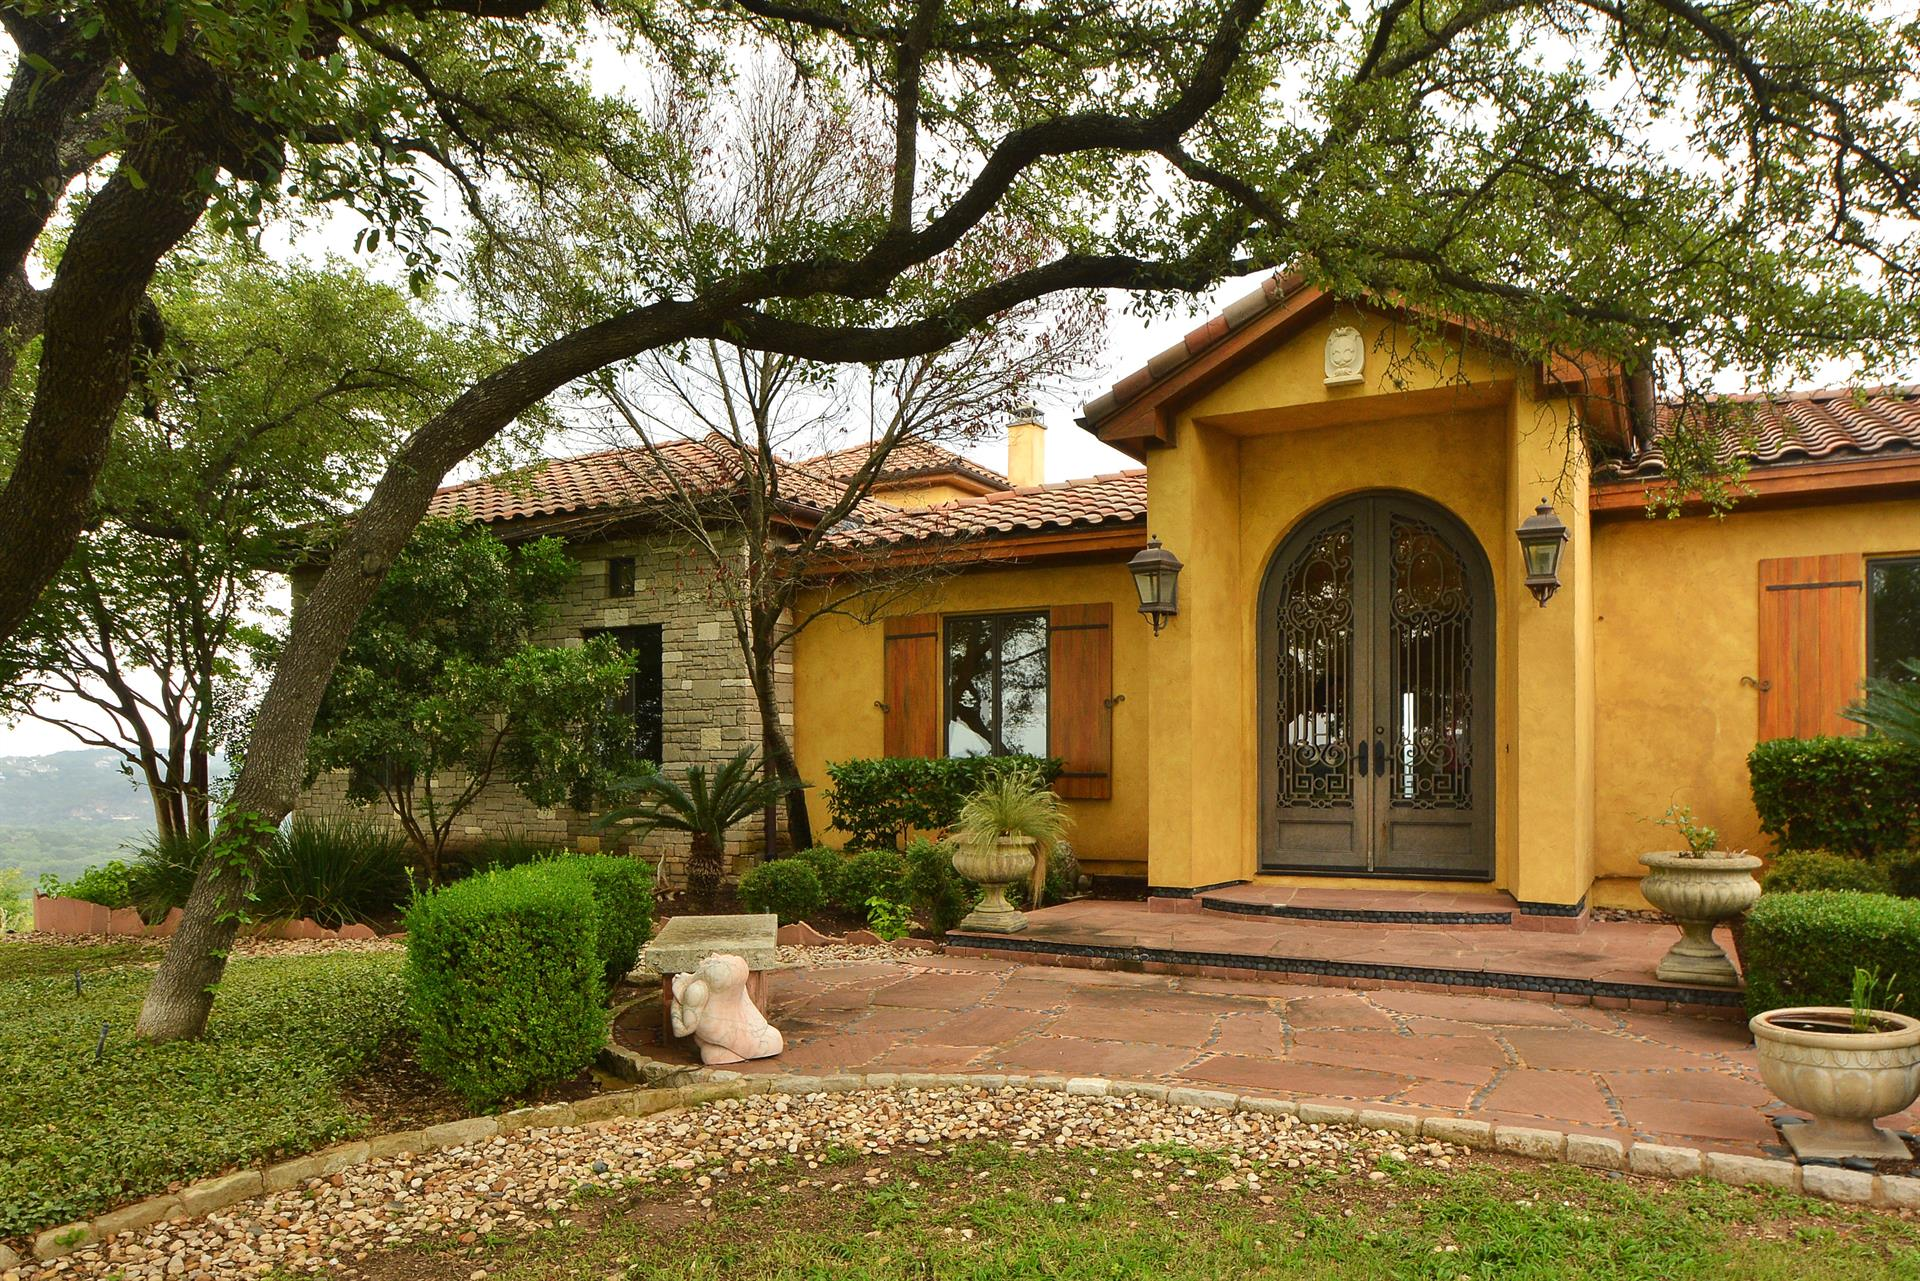 Residential for Sale at 1700 Barton Creek Boulevard 1700 Barton Creek Boulevard Austin, Texas 78735 United States